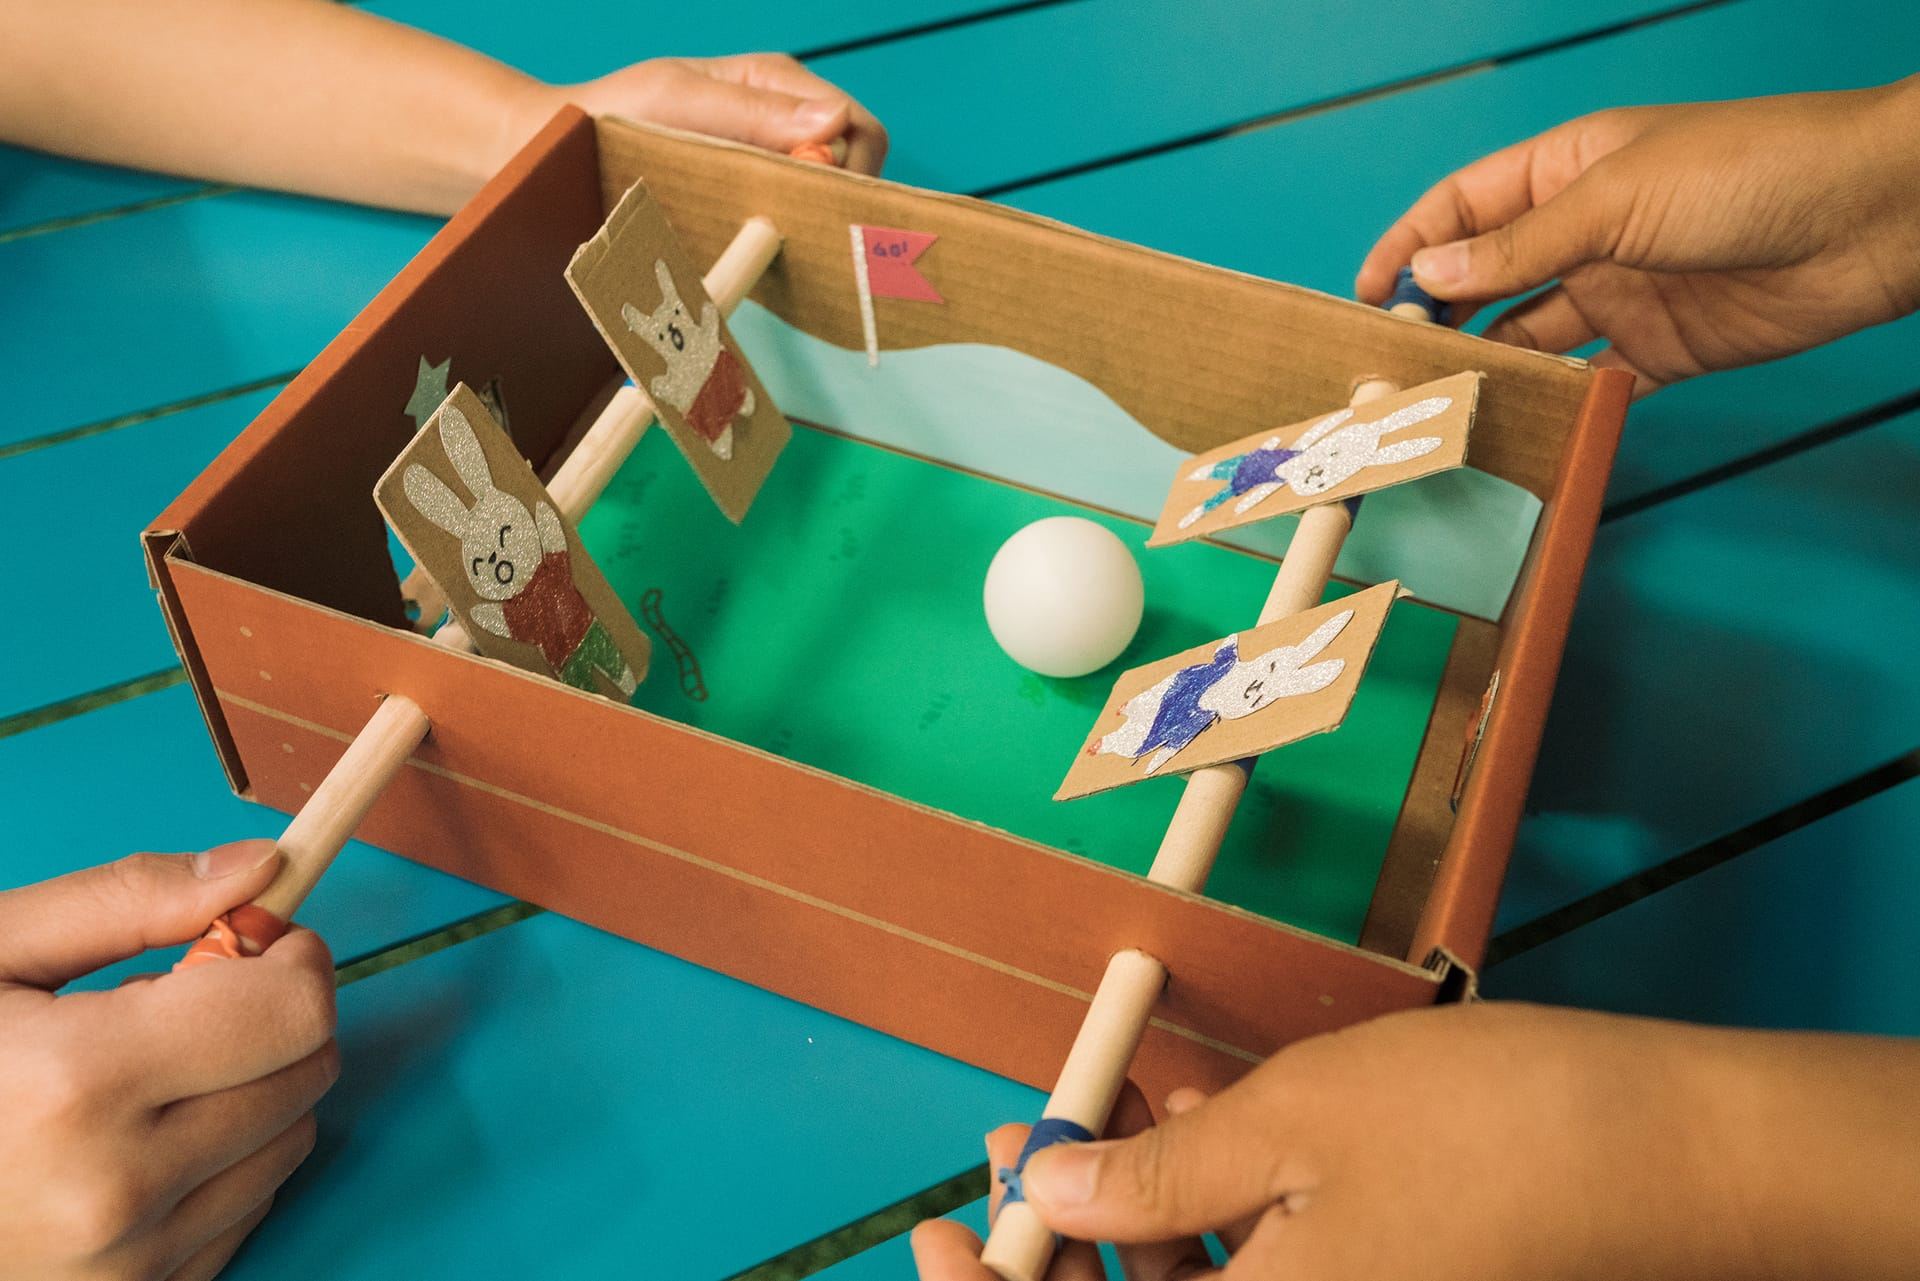 Cardboard Upcycled Project: Mini Foosball